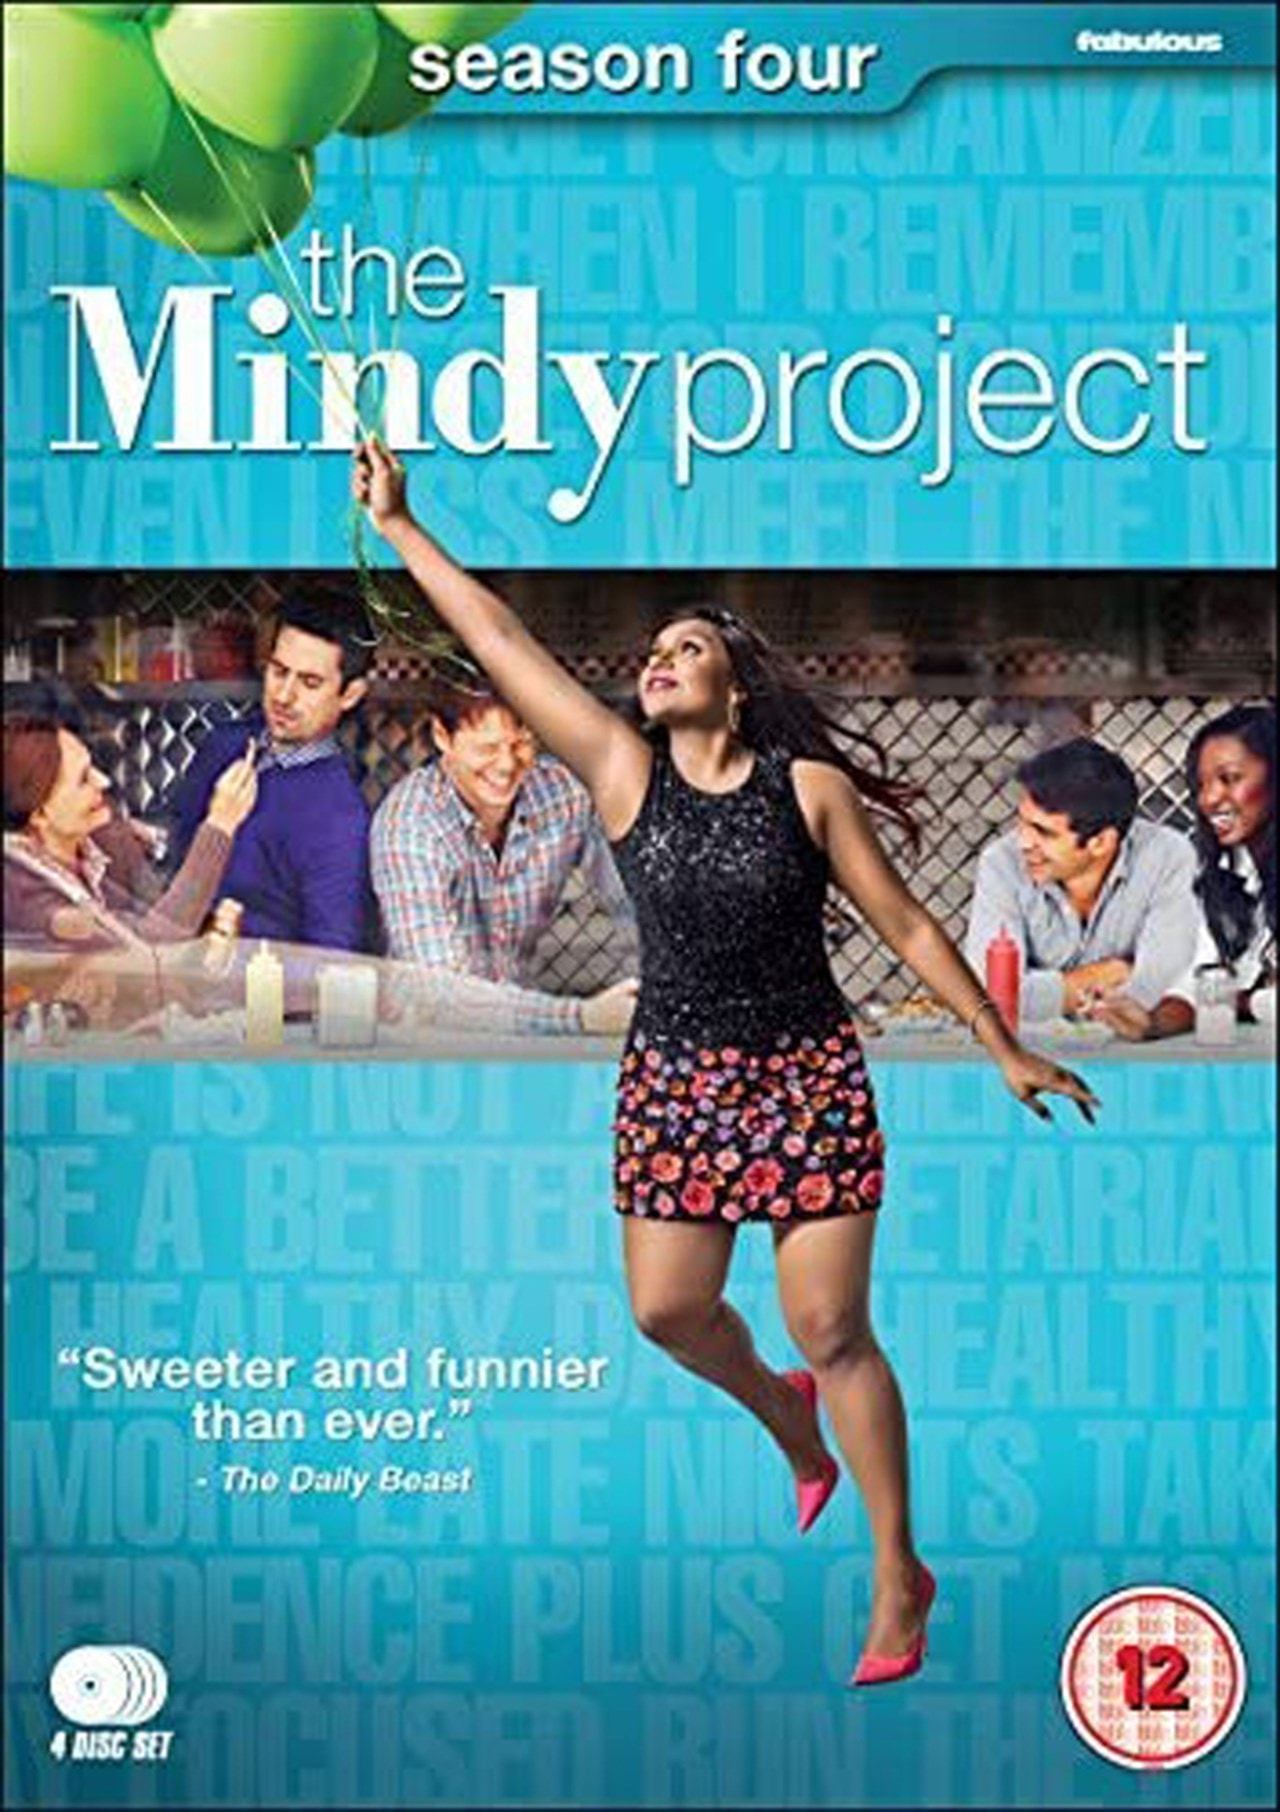 The Mindy Project: Season 4 - 1